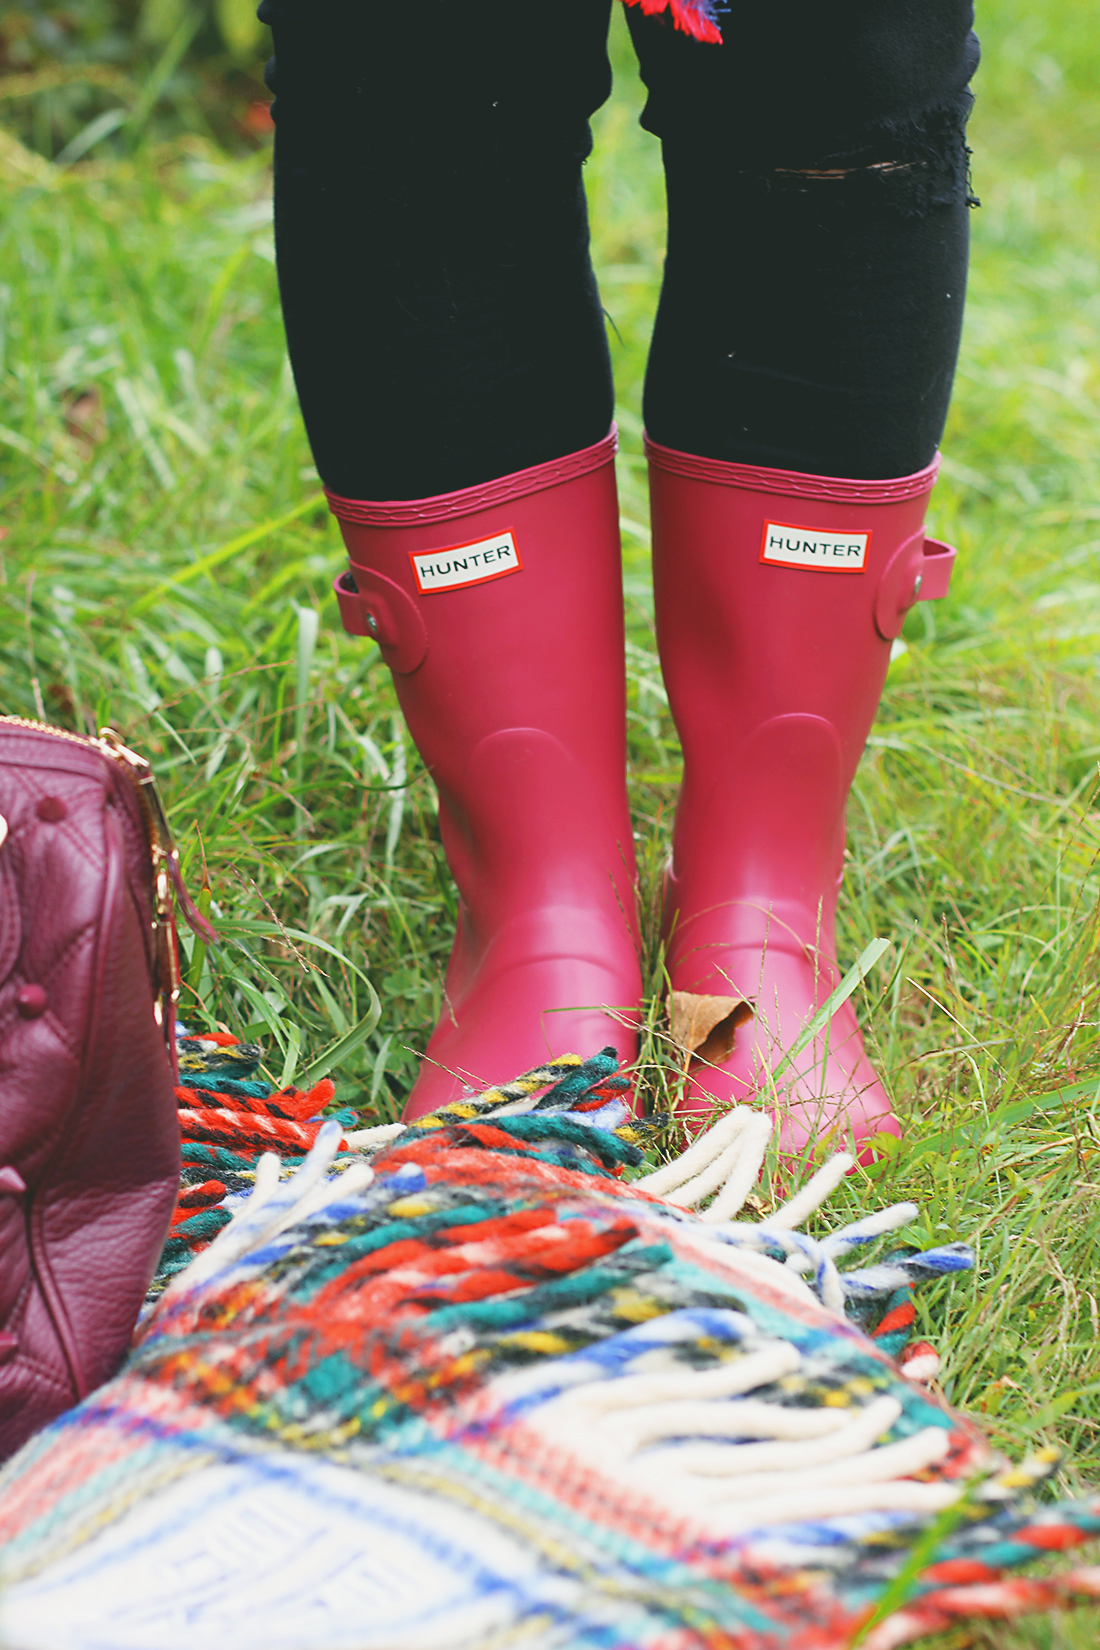 apple-picking-how-to-style-hunter-boots-9